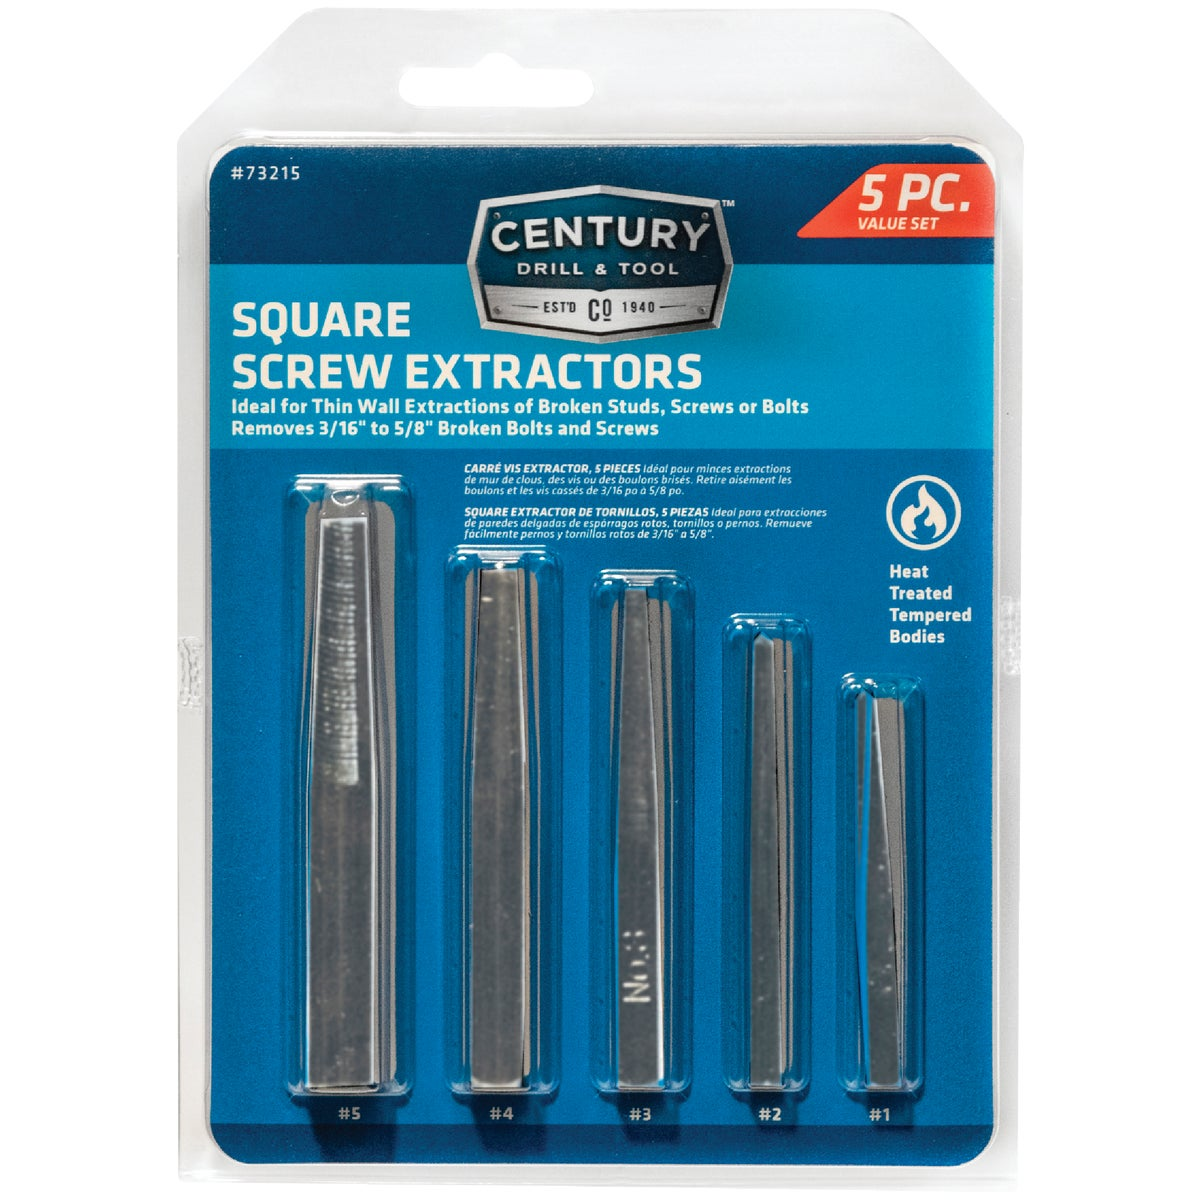 5PC SCREW EXTRACTOR